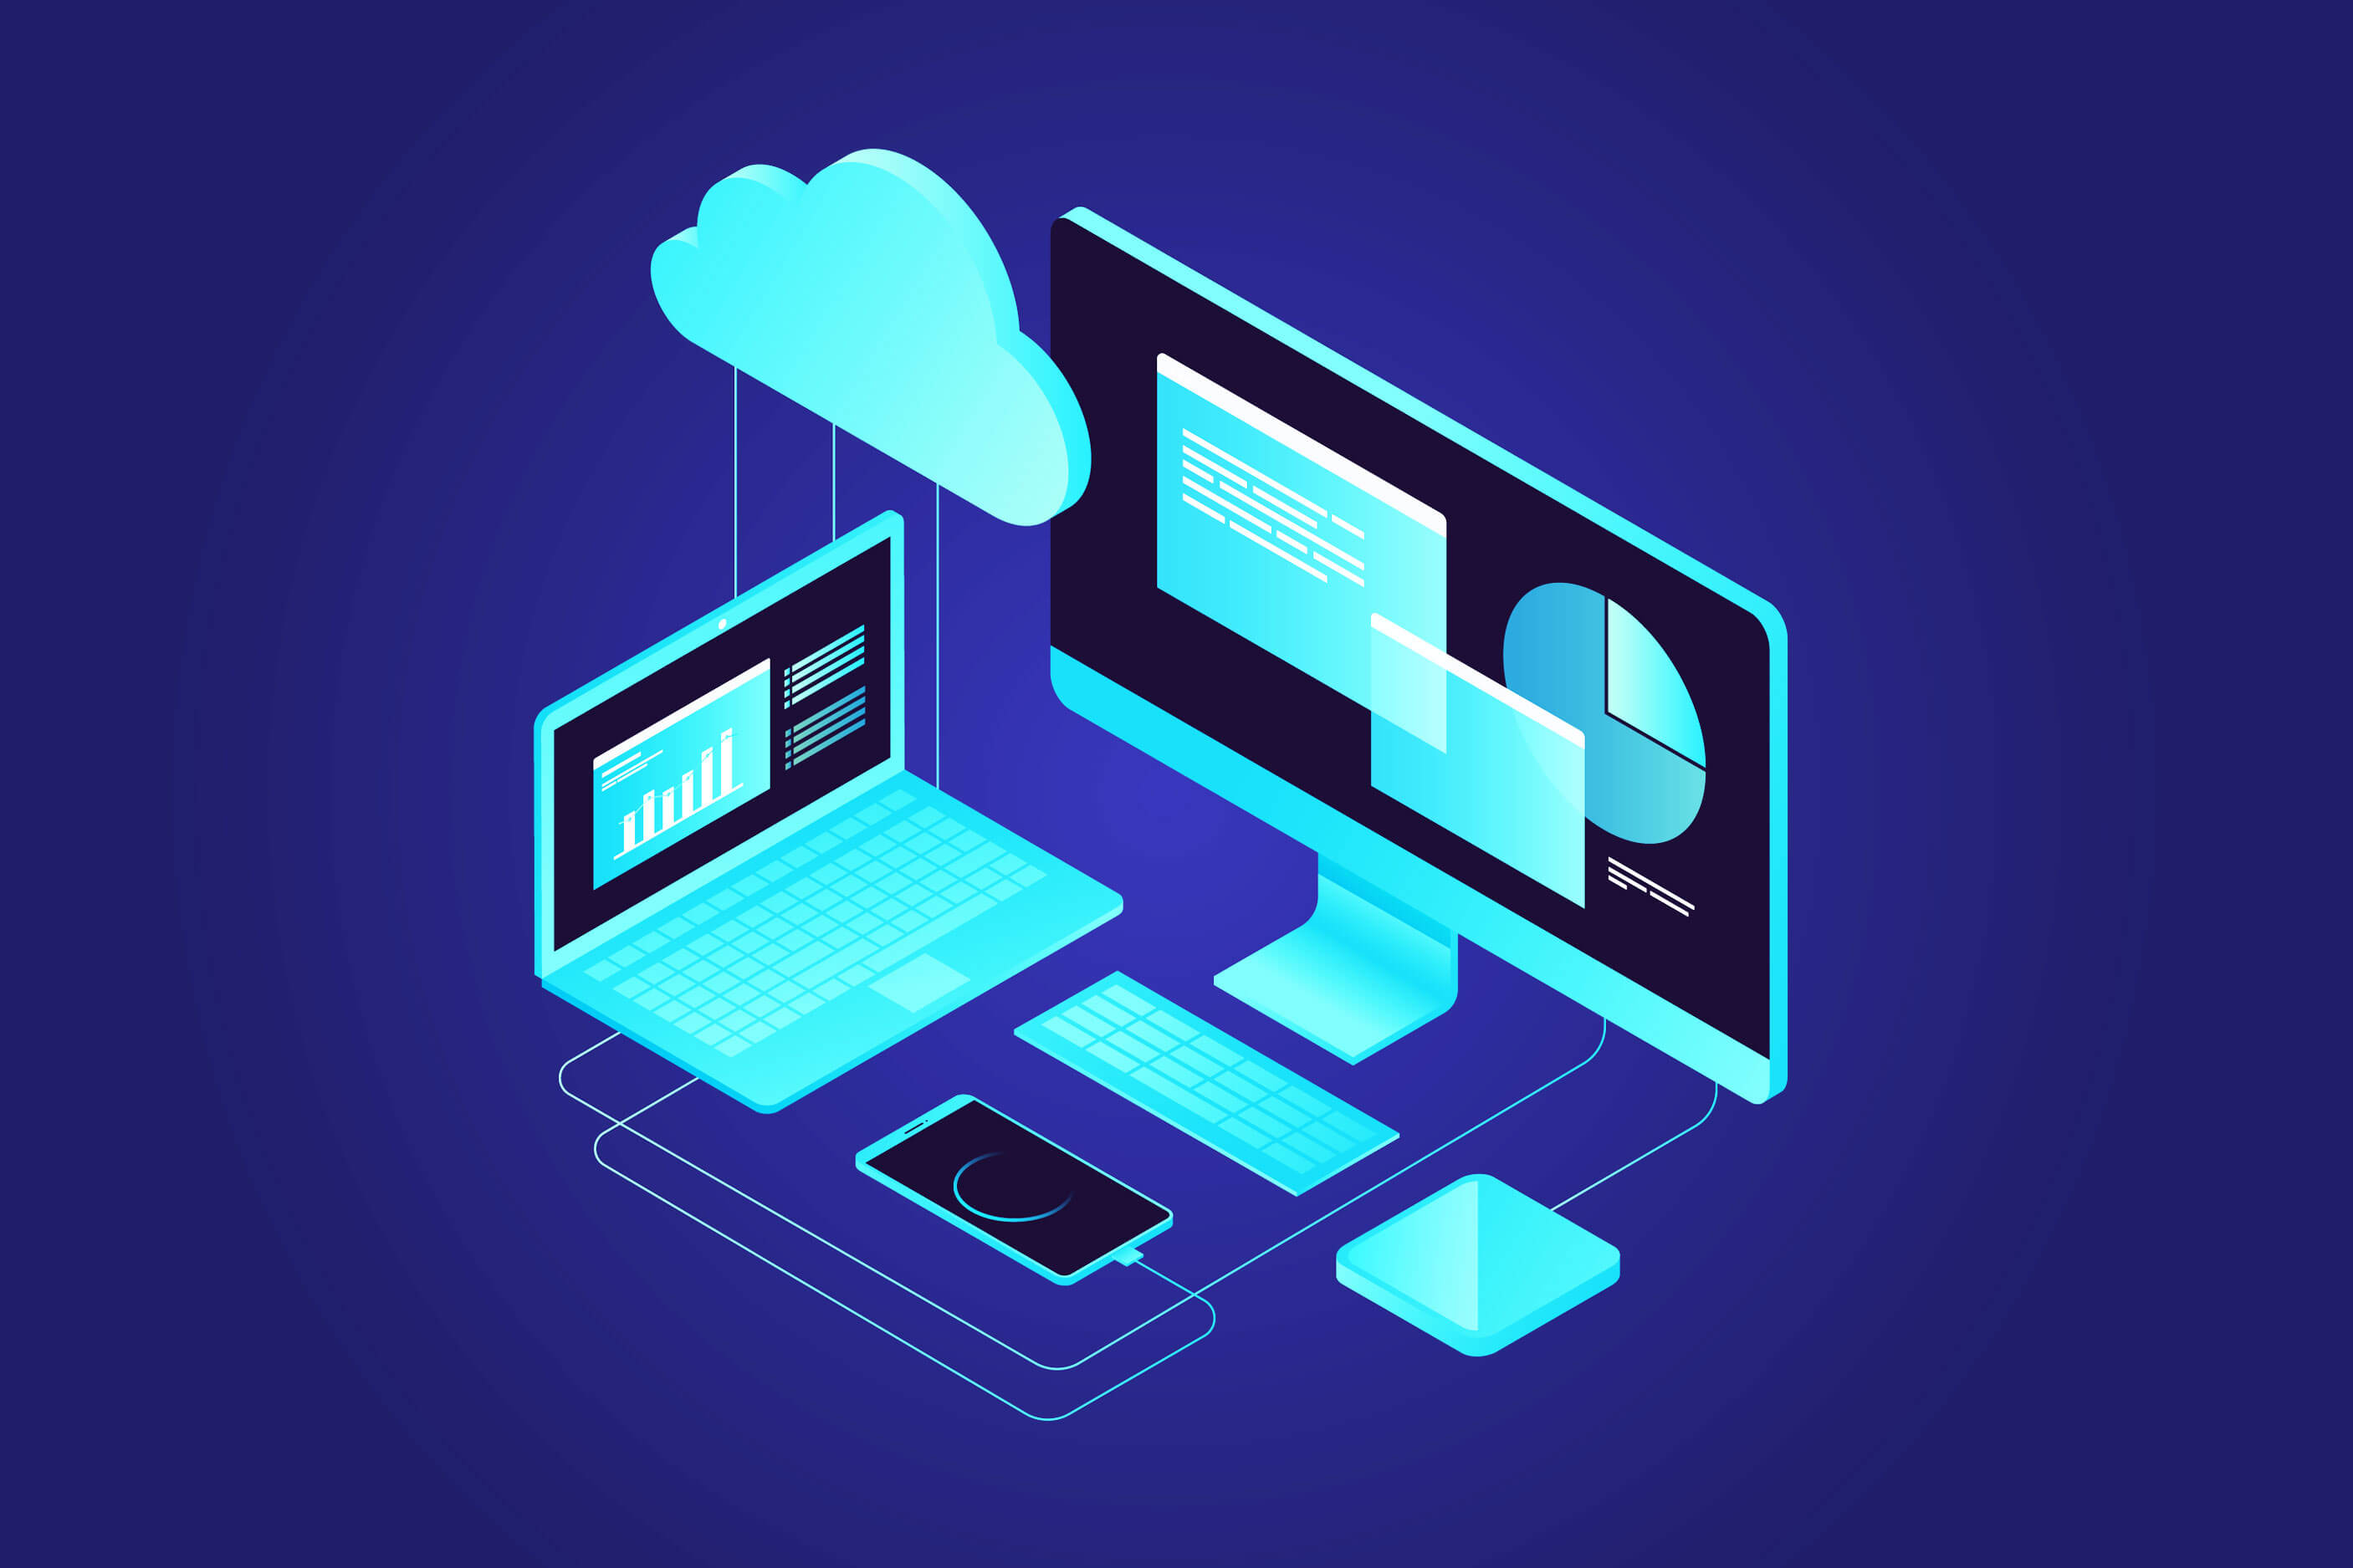 VDI cloud technology image